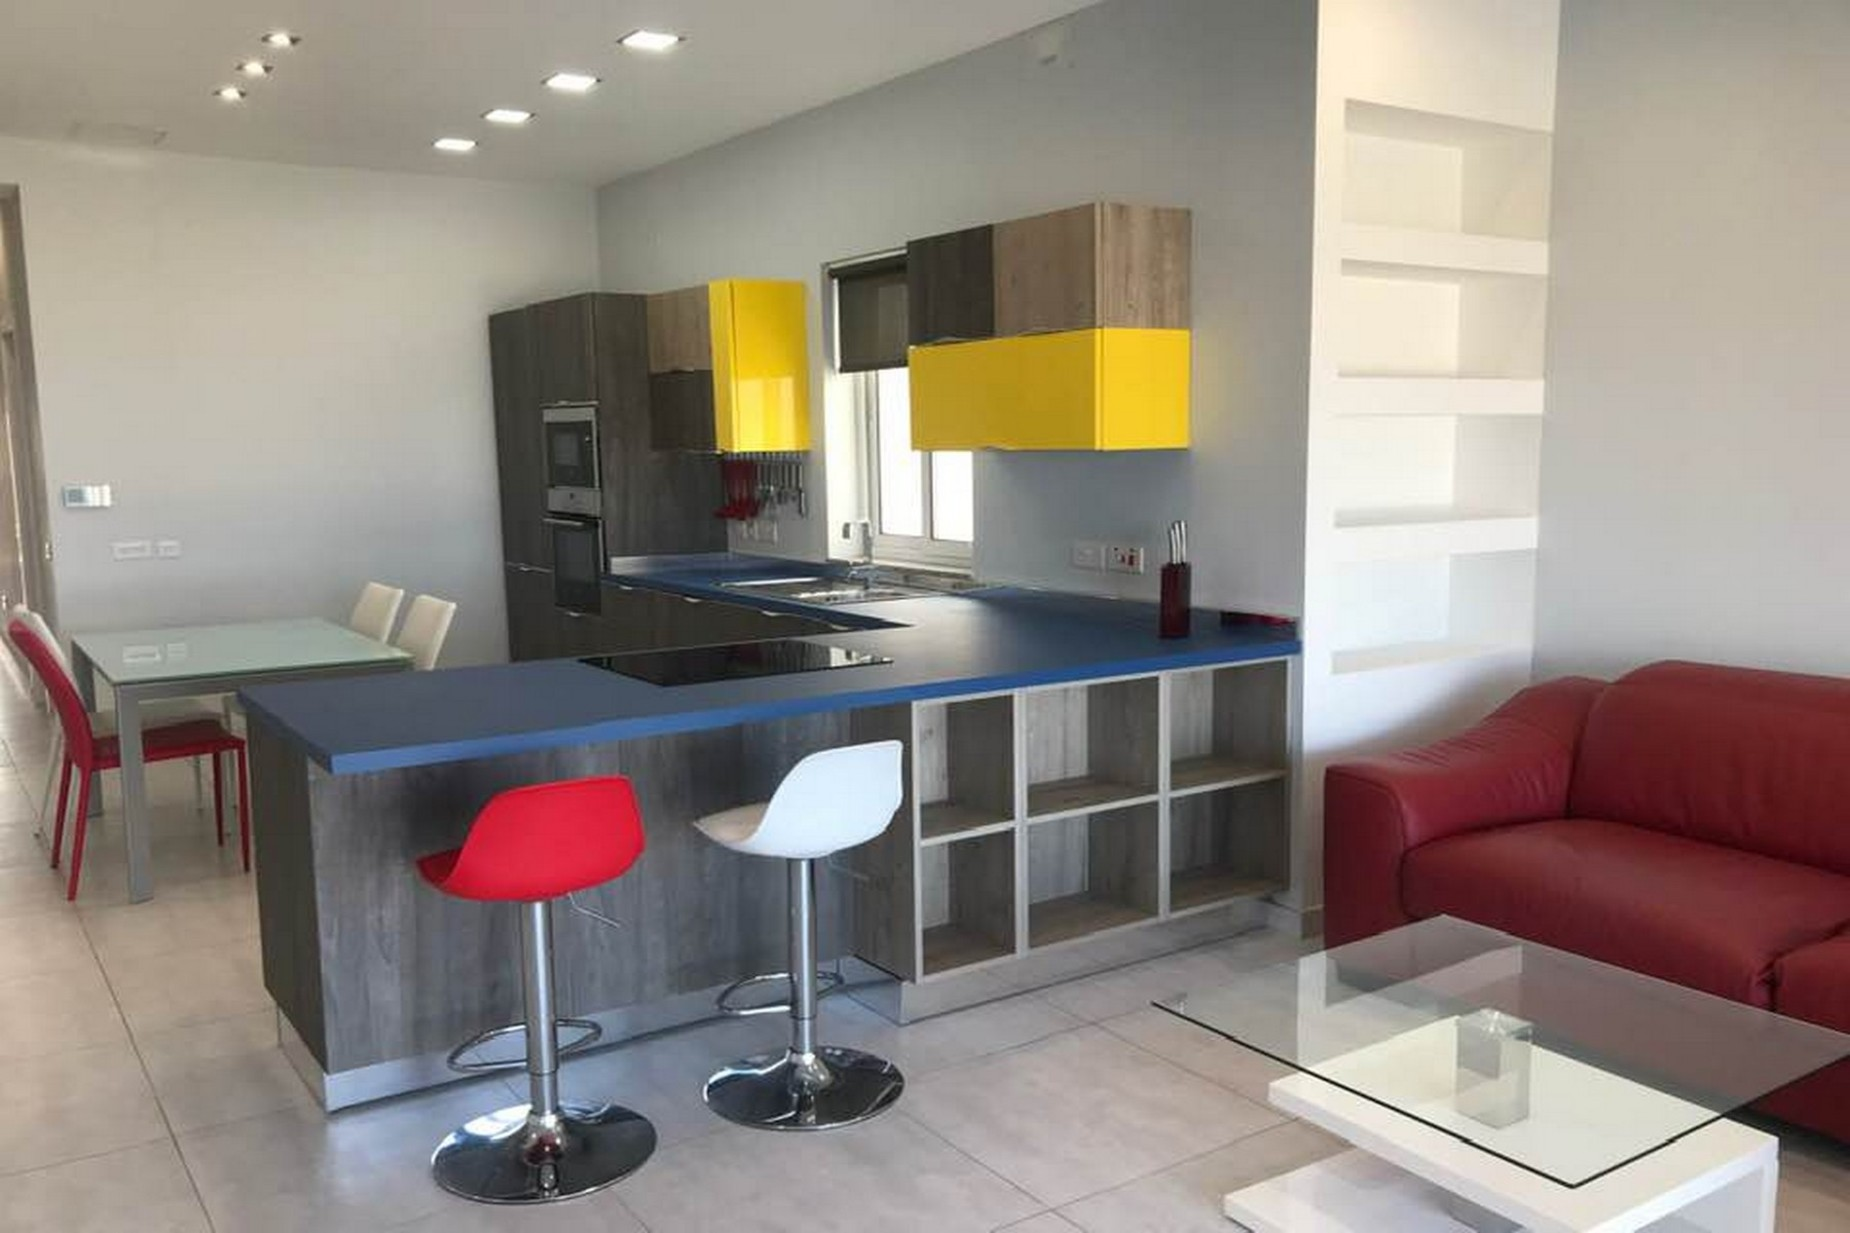 2 bed Apartment For Rent in Ibragg, Ibragg - thumb 5